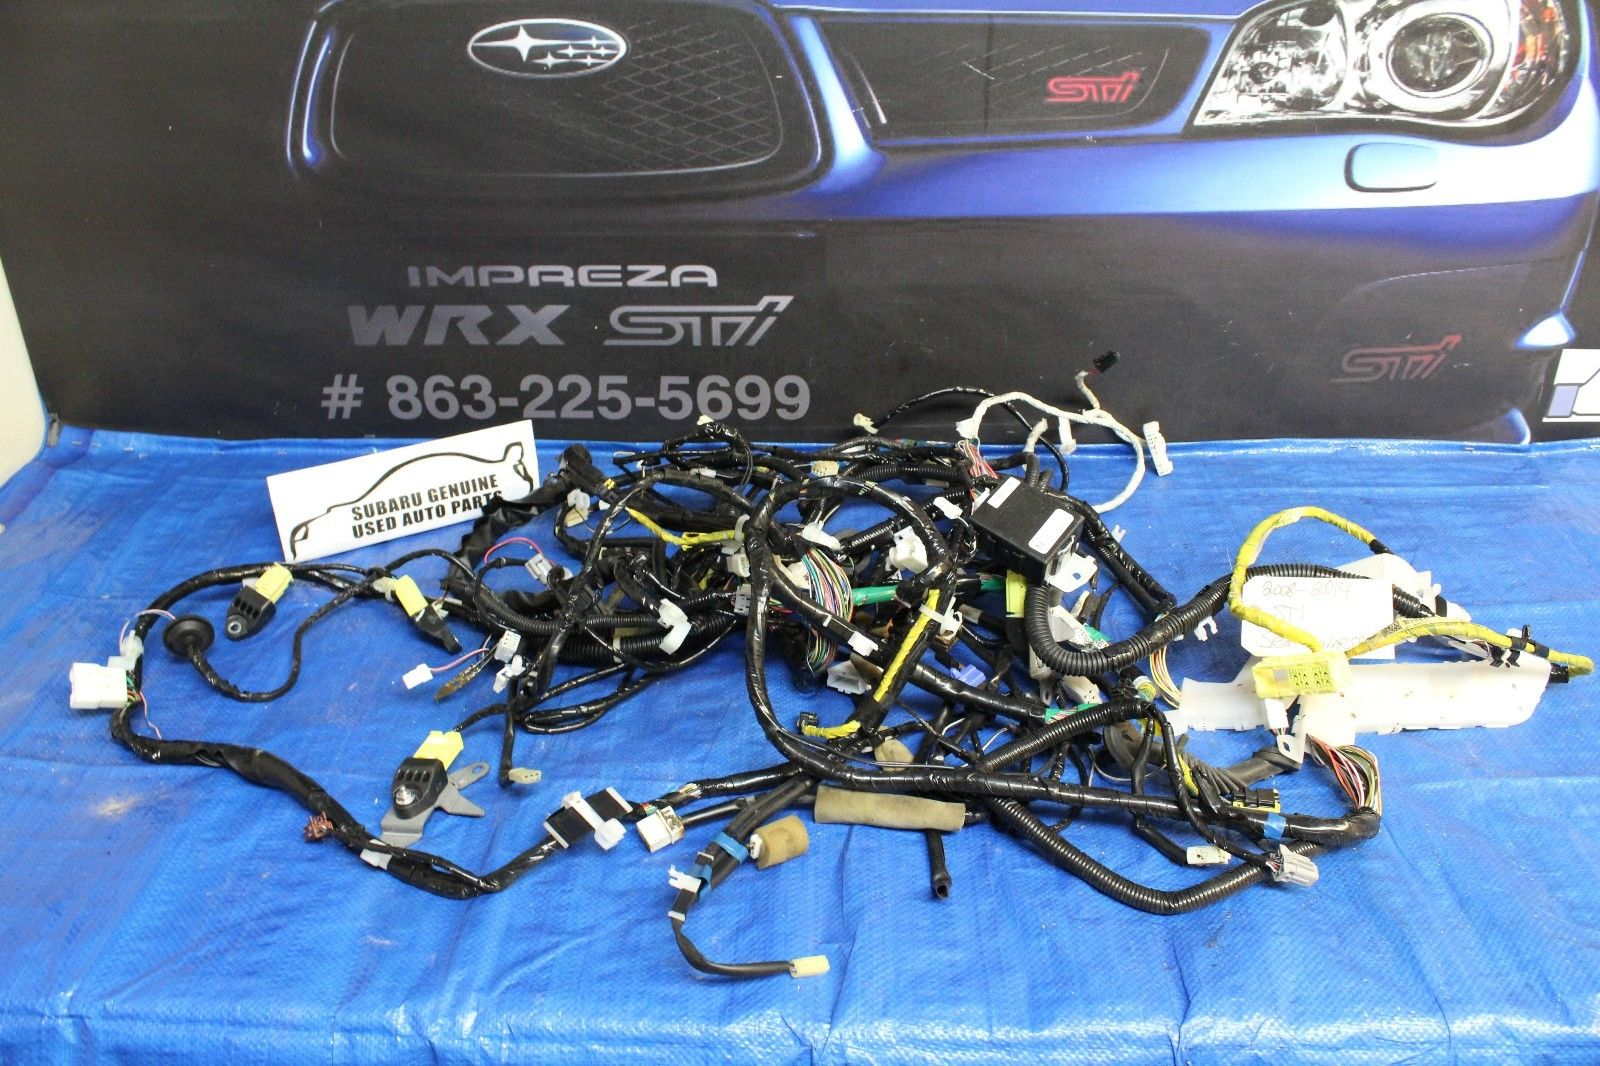 hight resolution of sti wiring harness wiring diagram blog subaru impreza wrx sti on engine diagram transmission on 2004 subaru